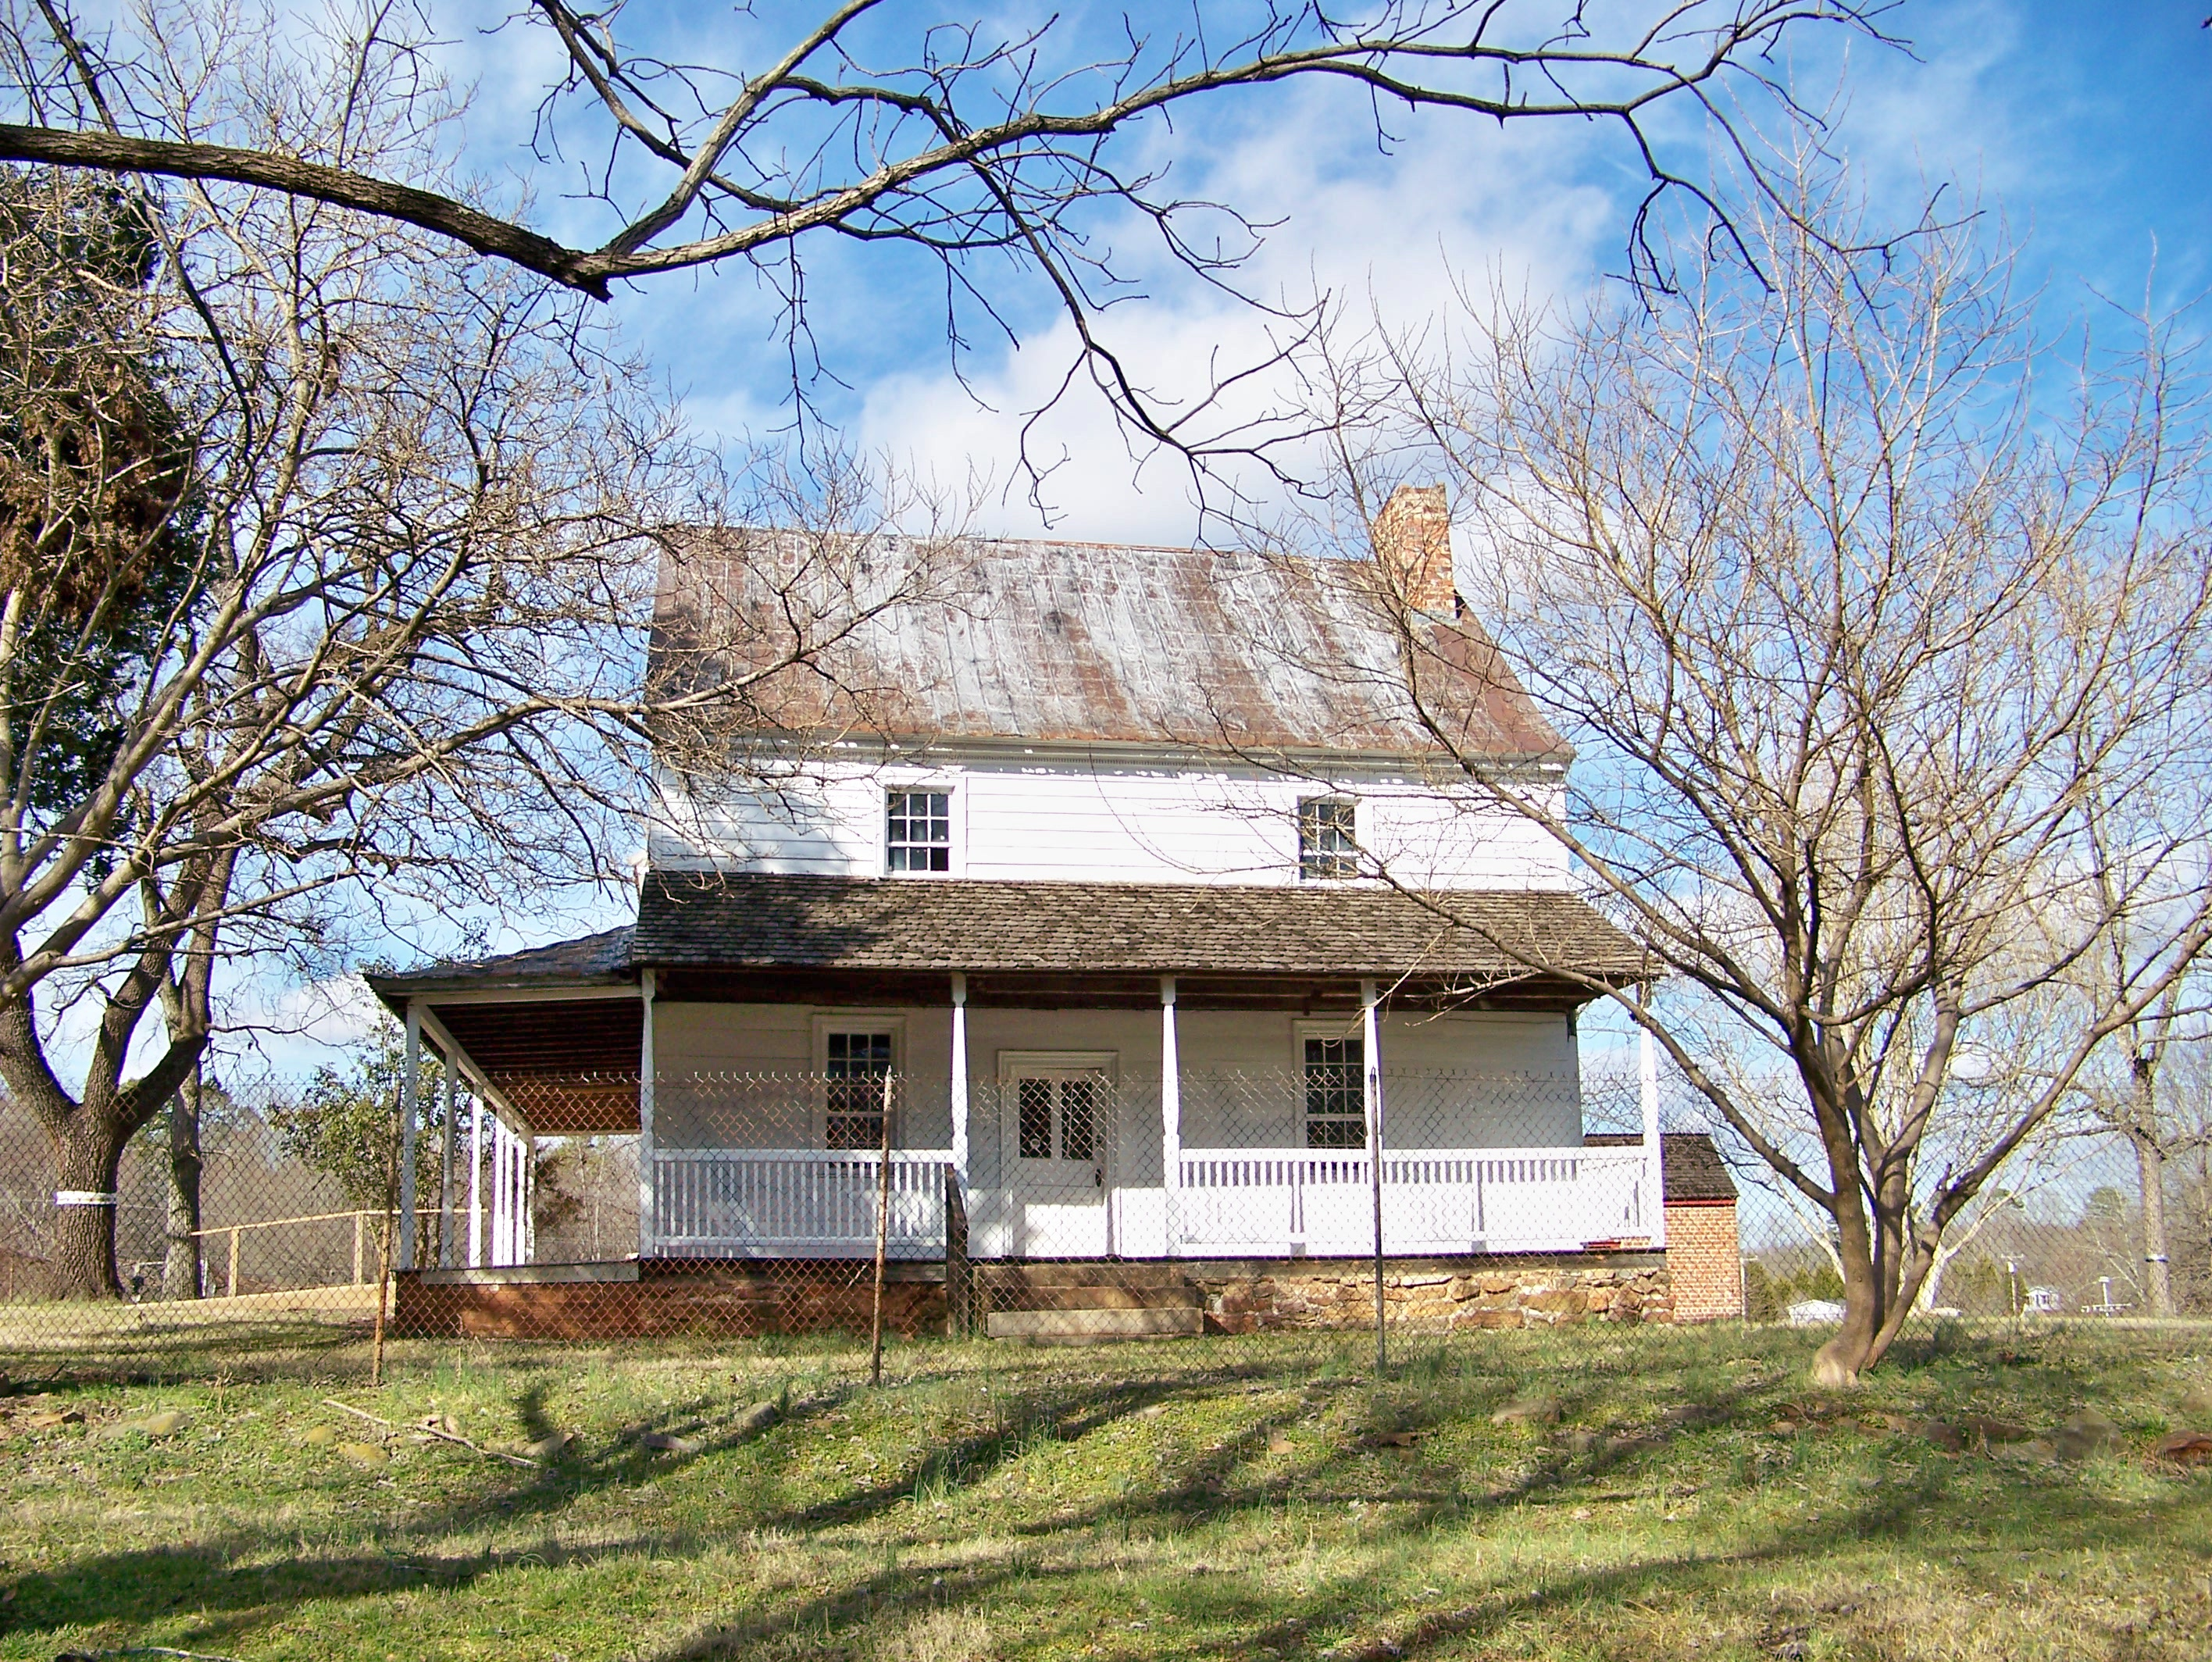 Hoyle Historic Homestead